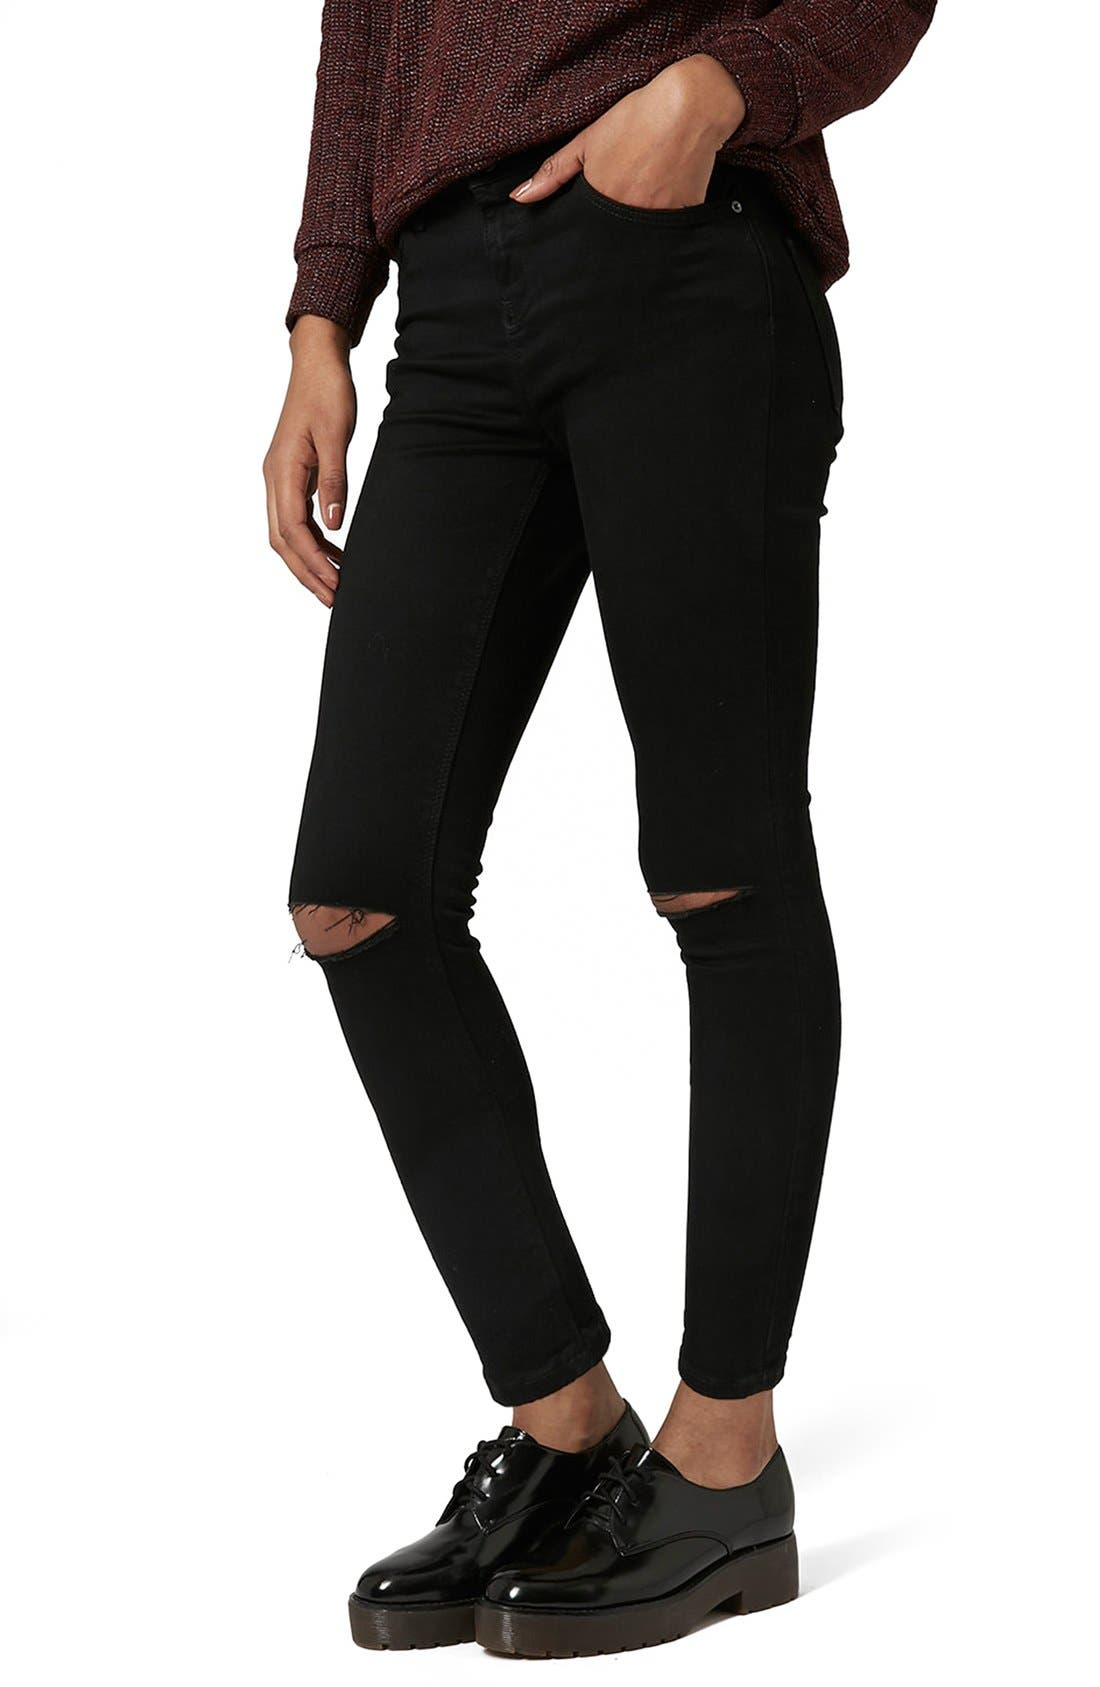 Alternate Image 1 Selected - Topshop Moto 'Jamie' Ripped Skinny Jeans (Tall)